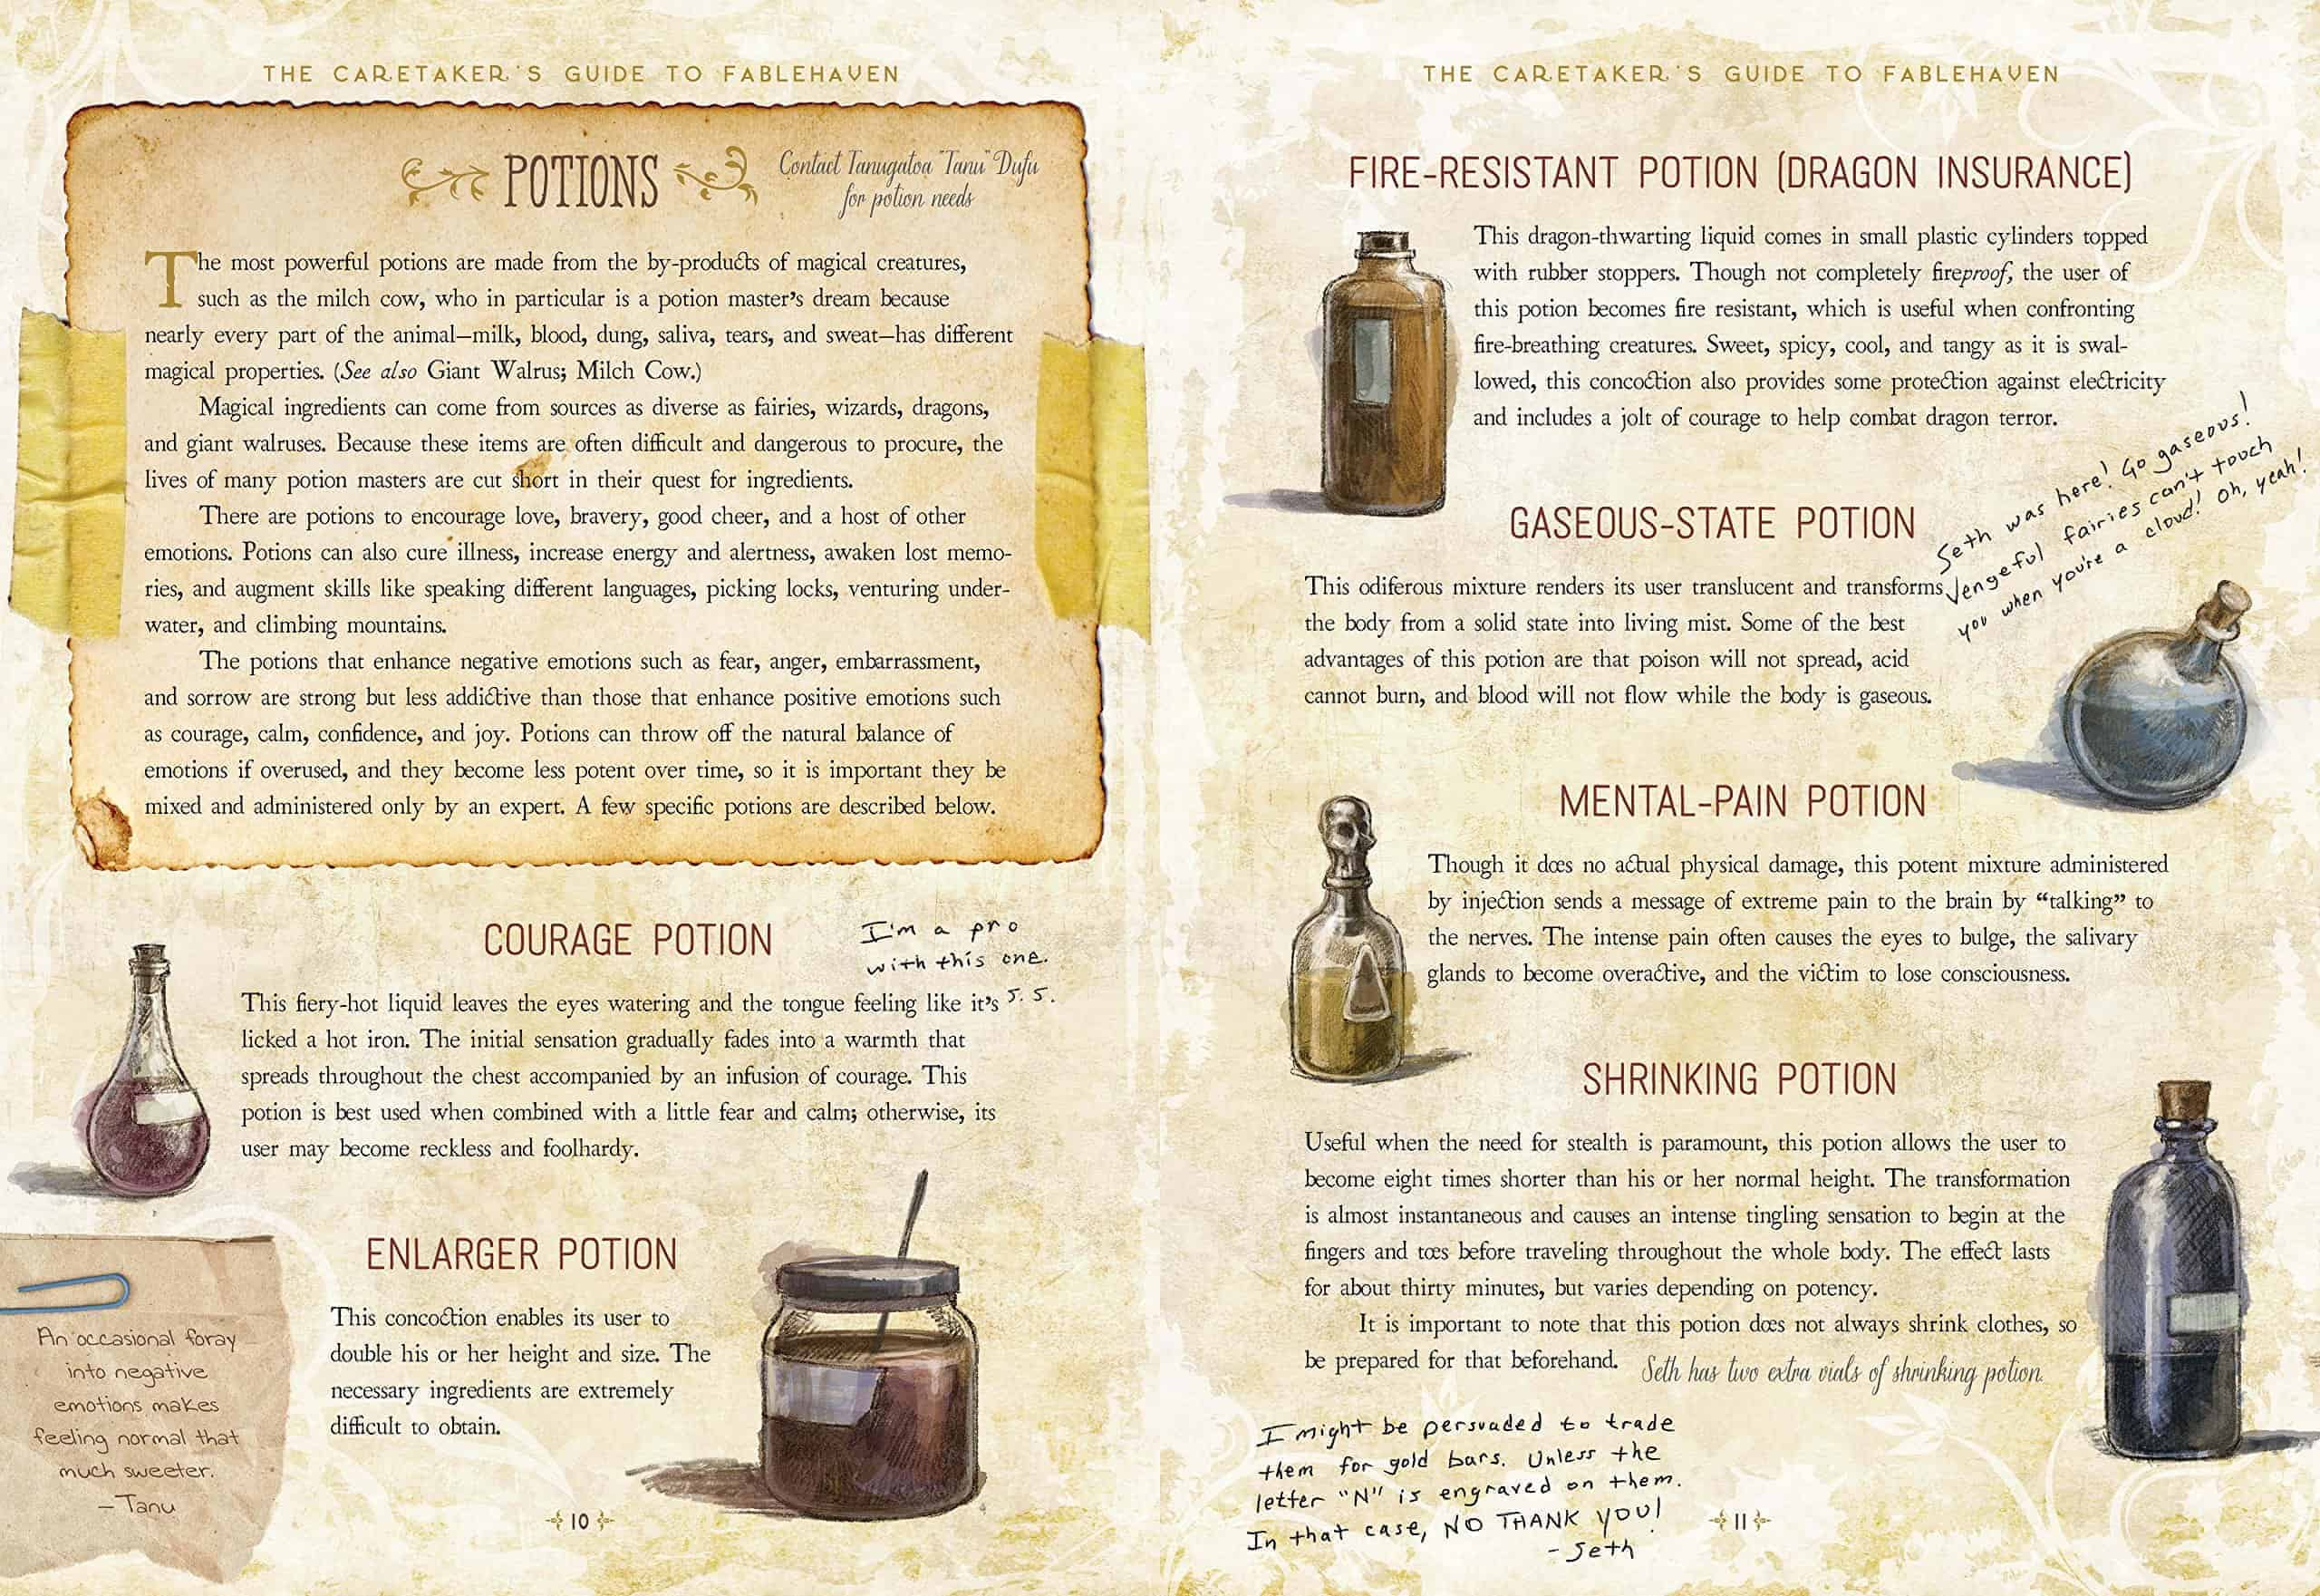 Caretakers Guide to Fablehaven review